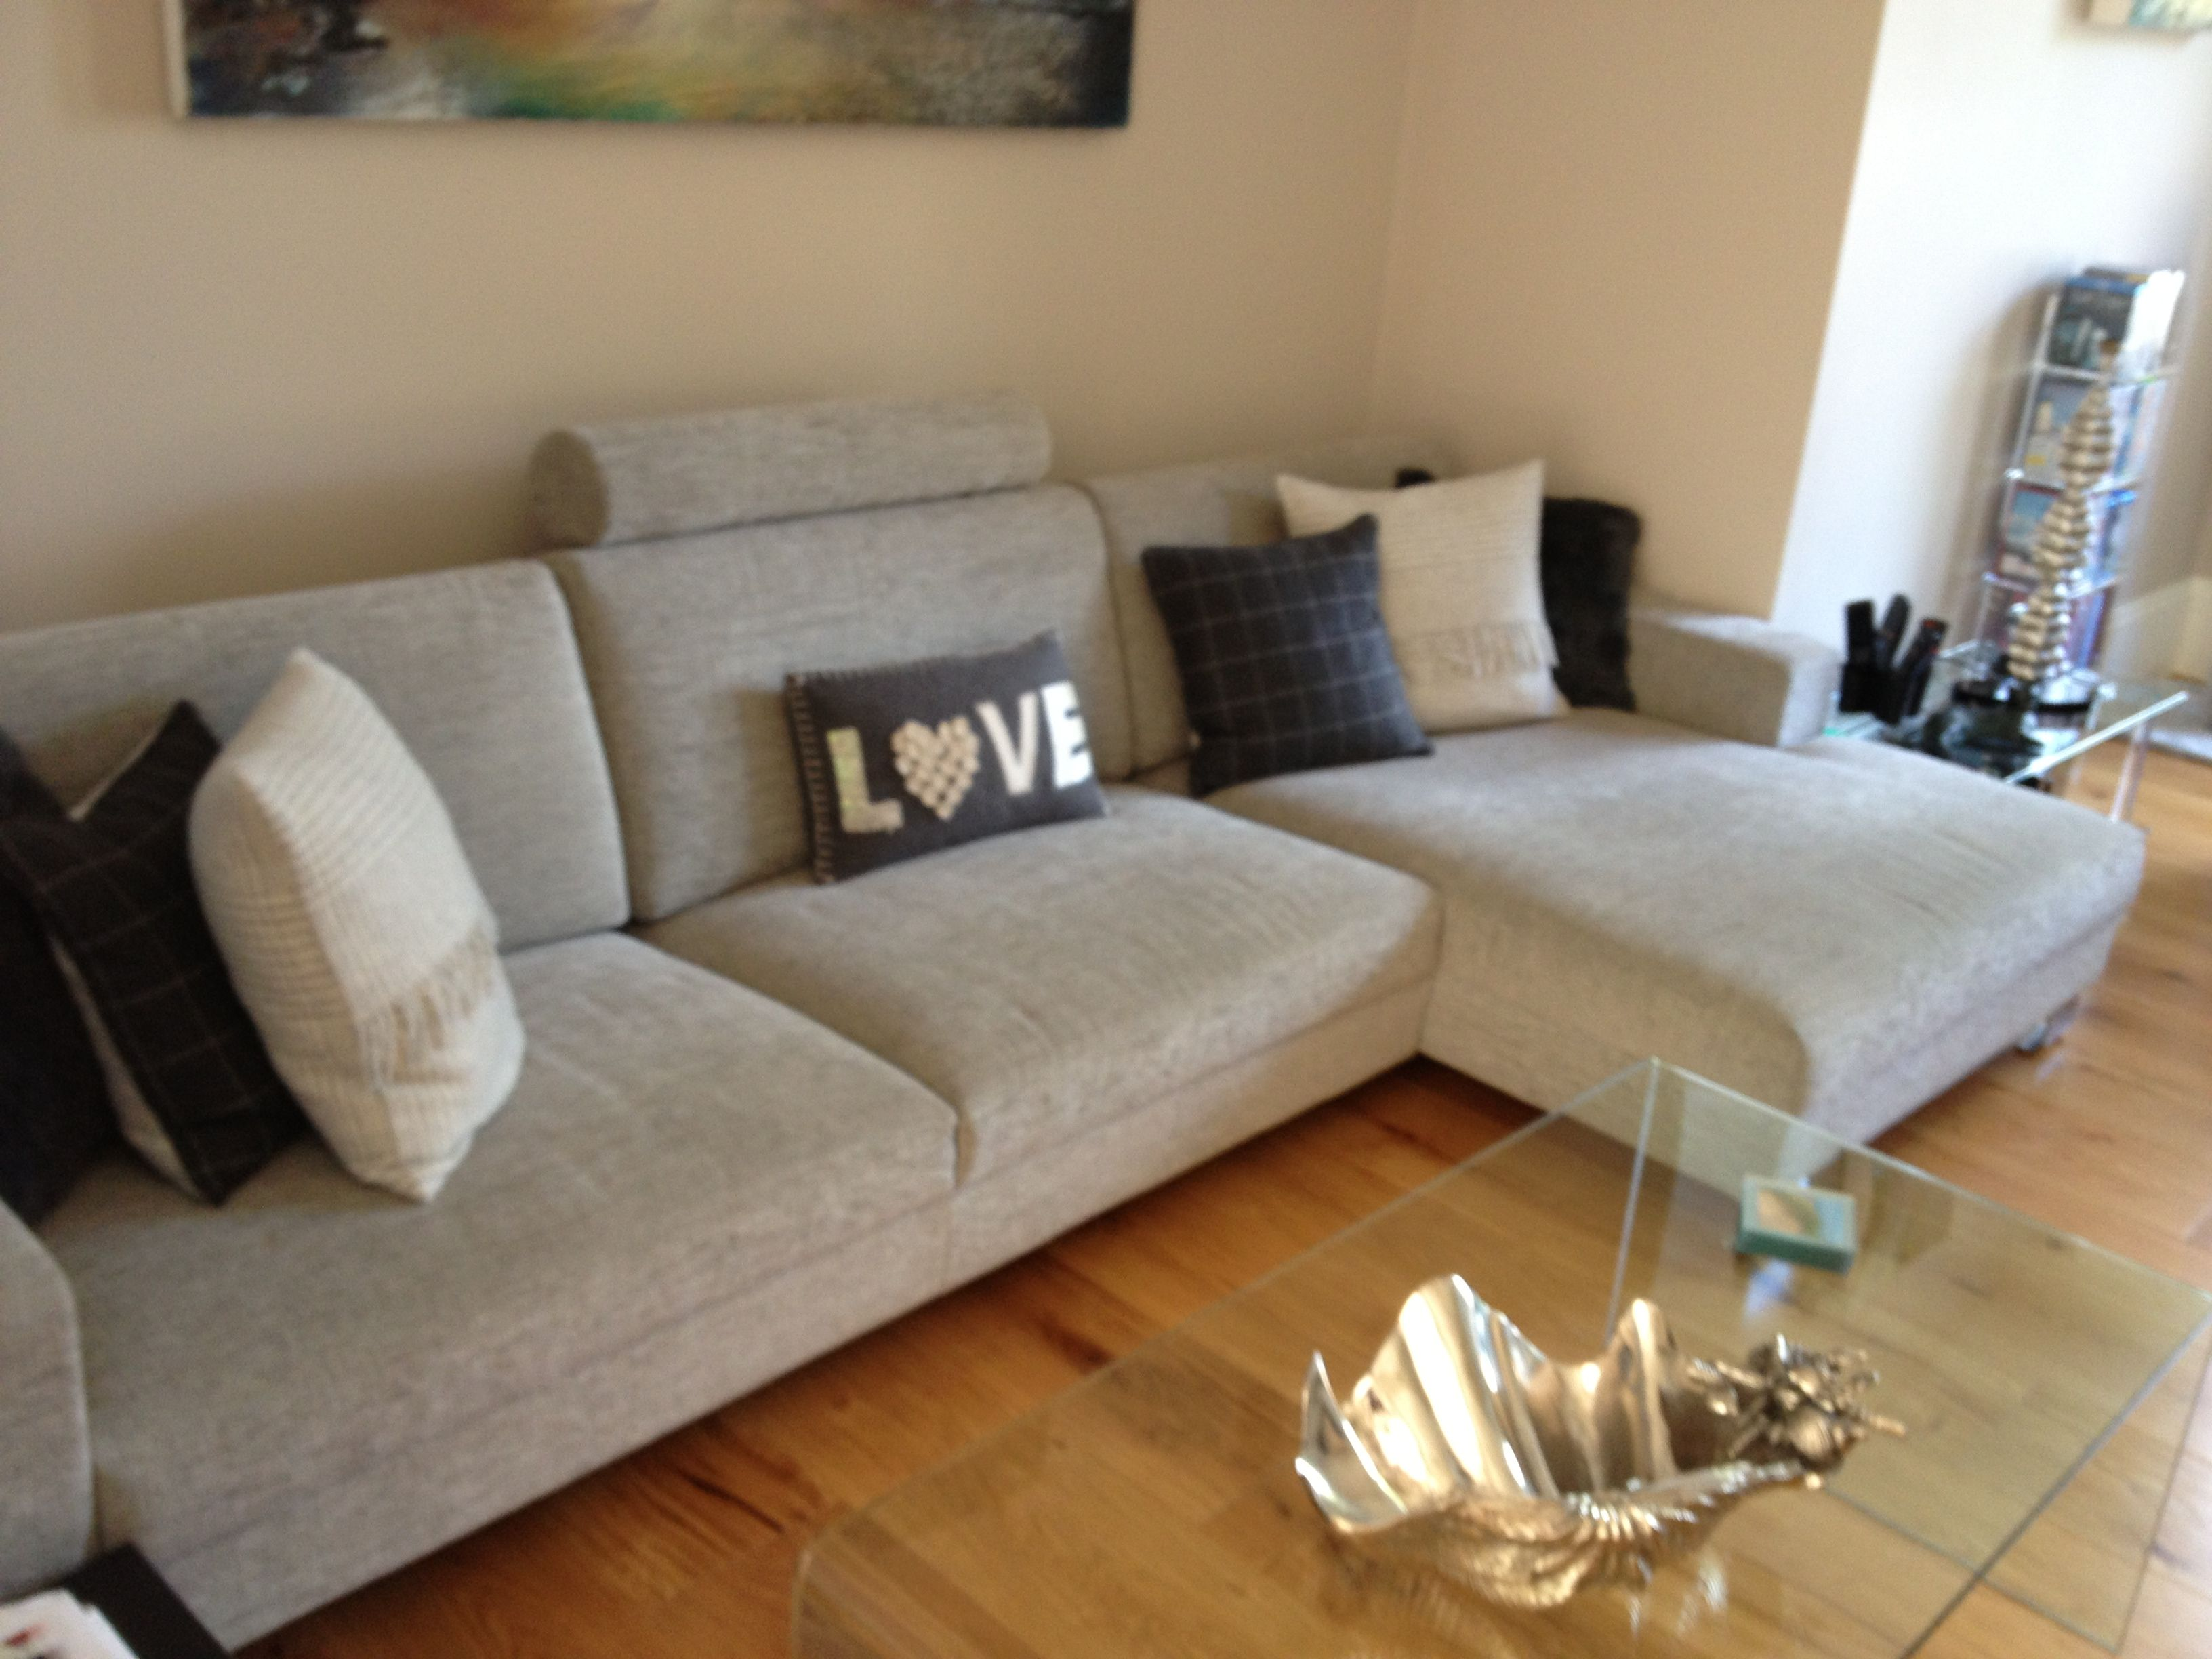 Corylus Low And Deep Contemporary Sofa Chaise Sectional Seating In Light Grey